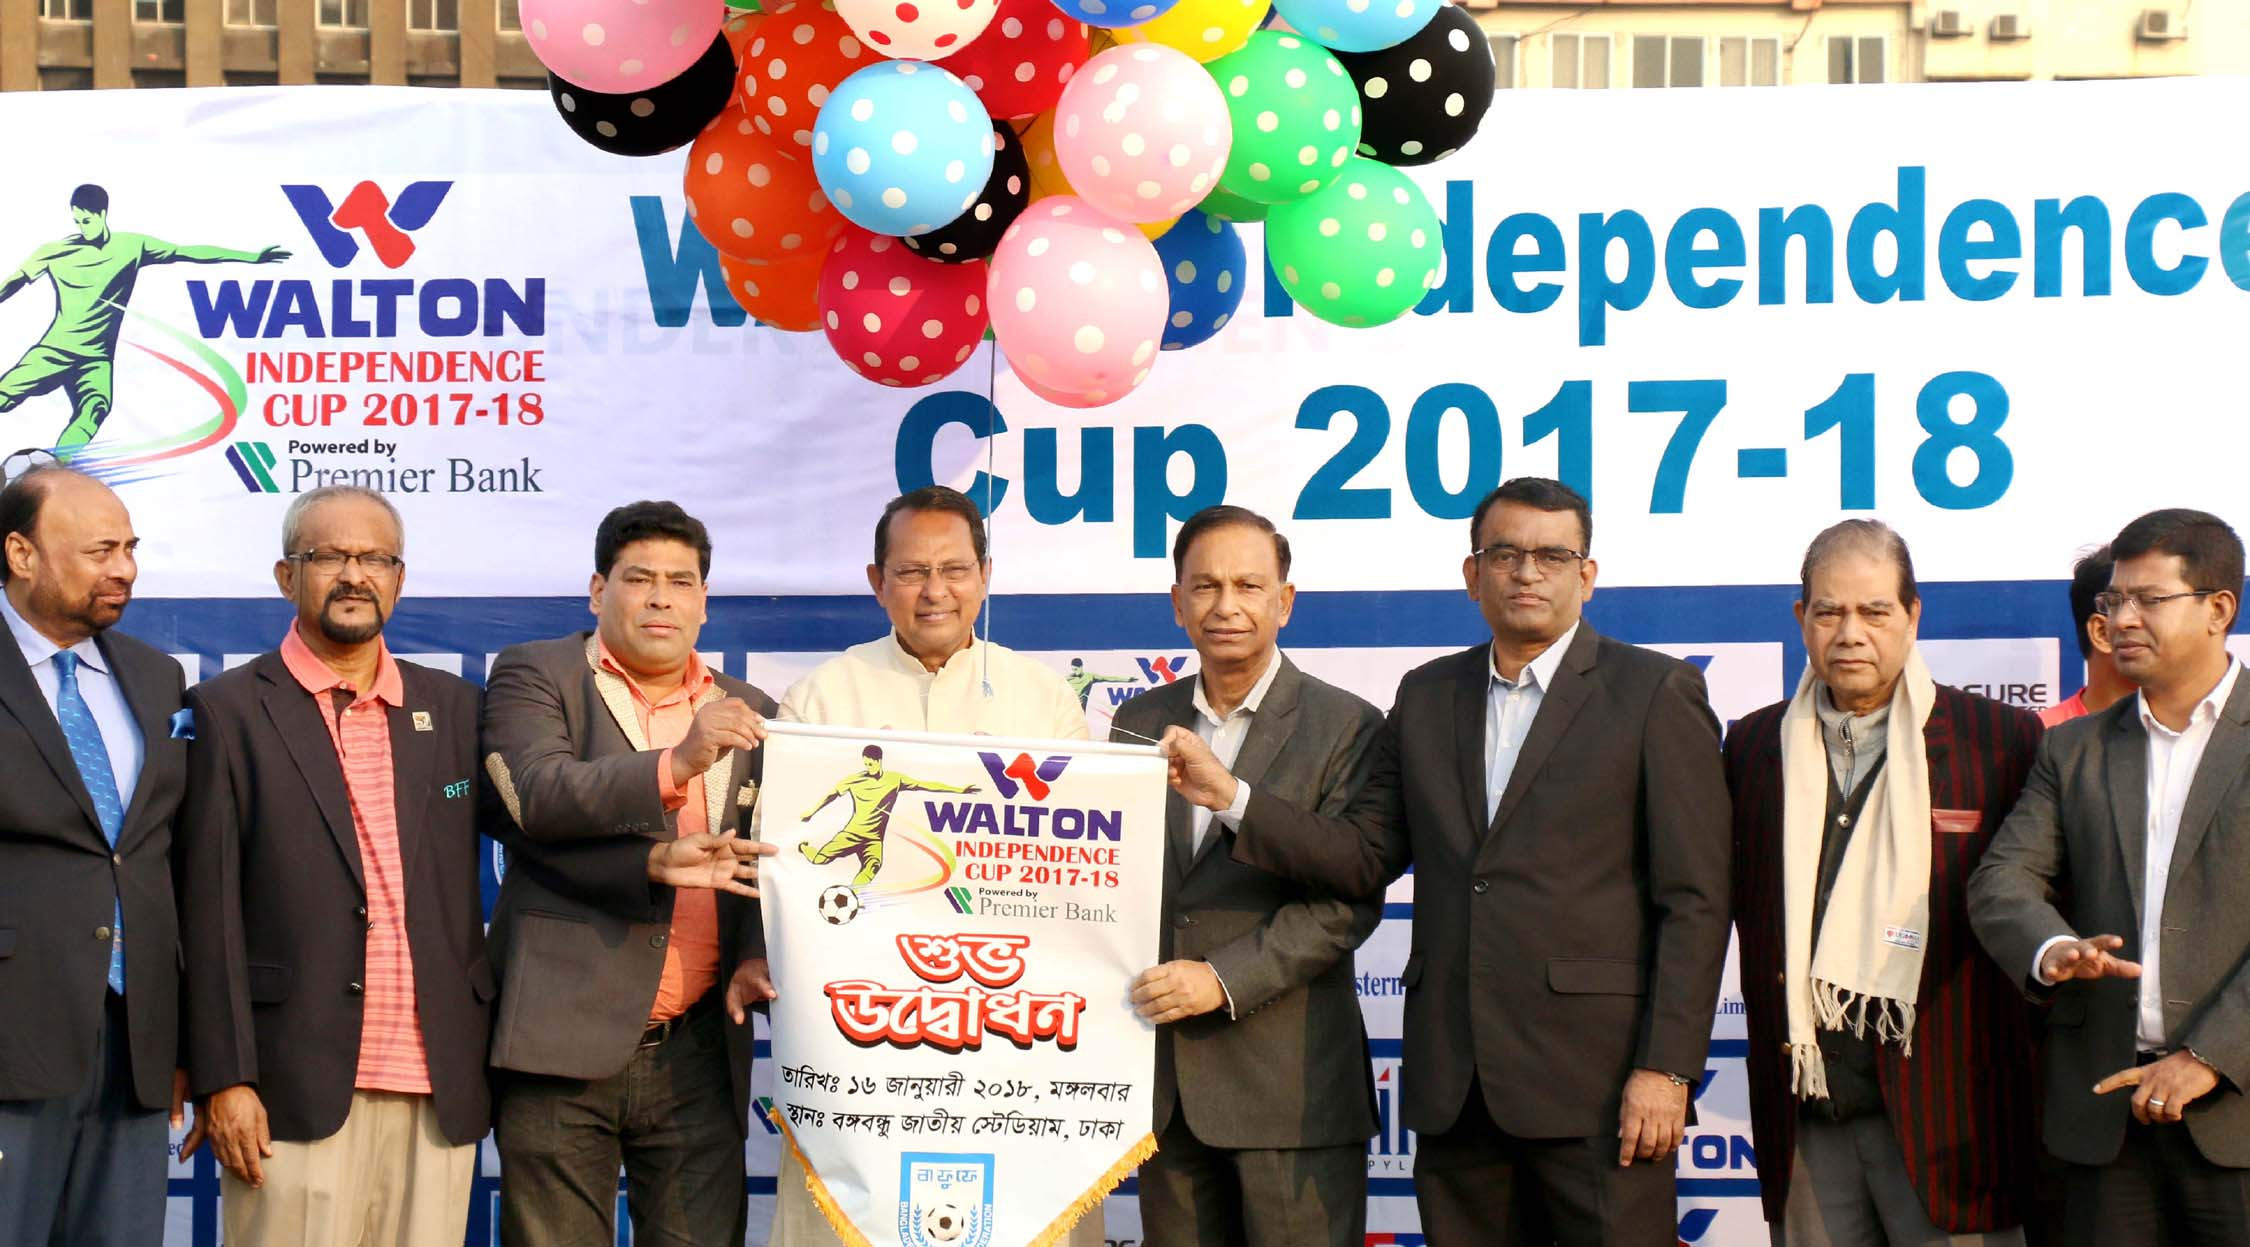 Minister for Information Hasanul Haq Inu inaugurating the Walton Independence Cup Football by releasing the balloons as the chief guest at the Bangabandhu National Stadium on Tuesday.